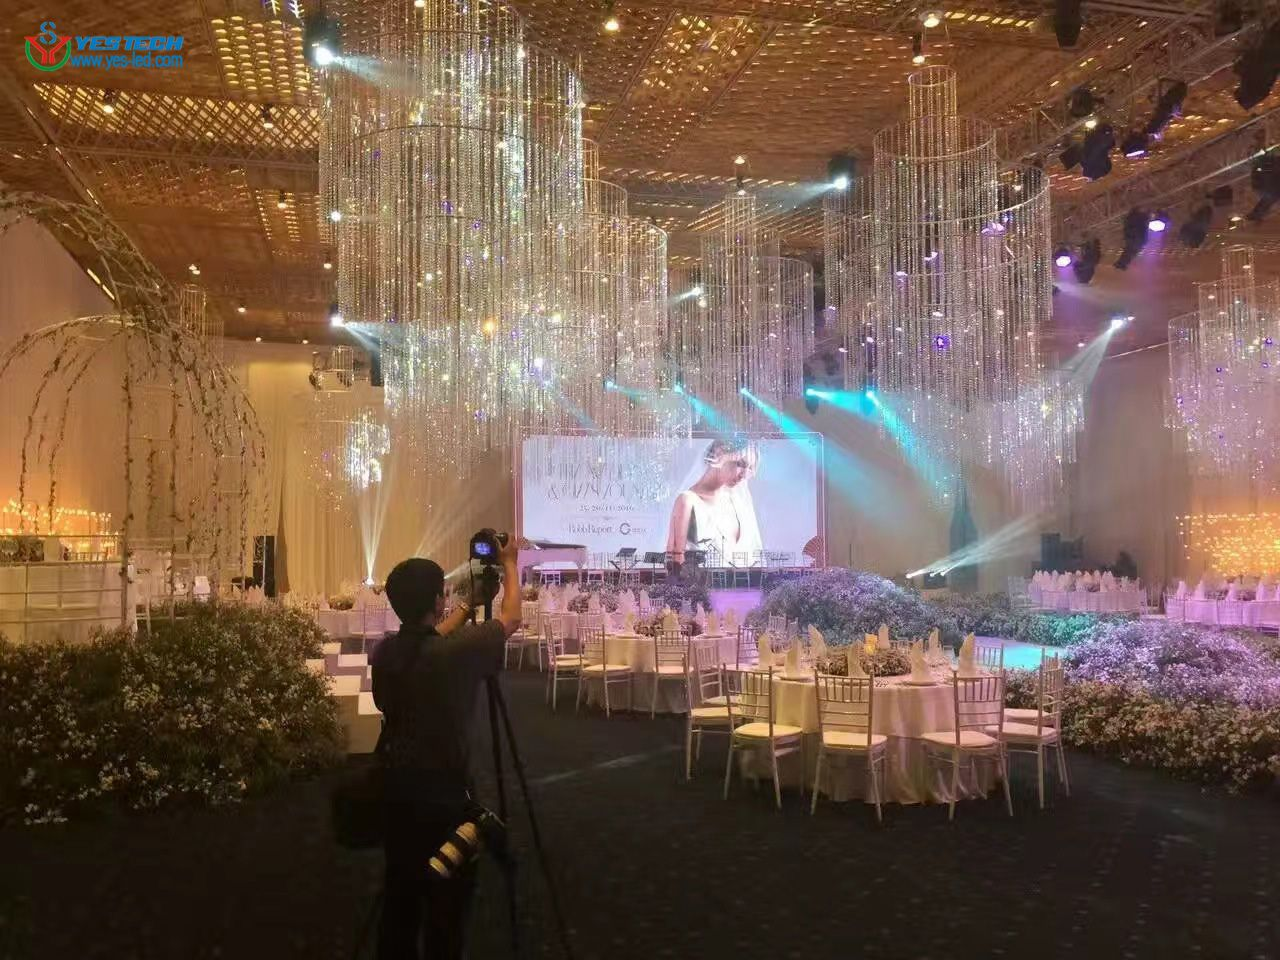 Magic stage led screen used as wedding stage decoration.   Stage decorations,  Wedding stage decorations, Christmas screen savers